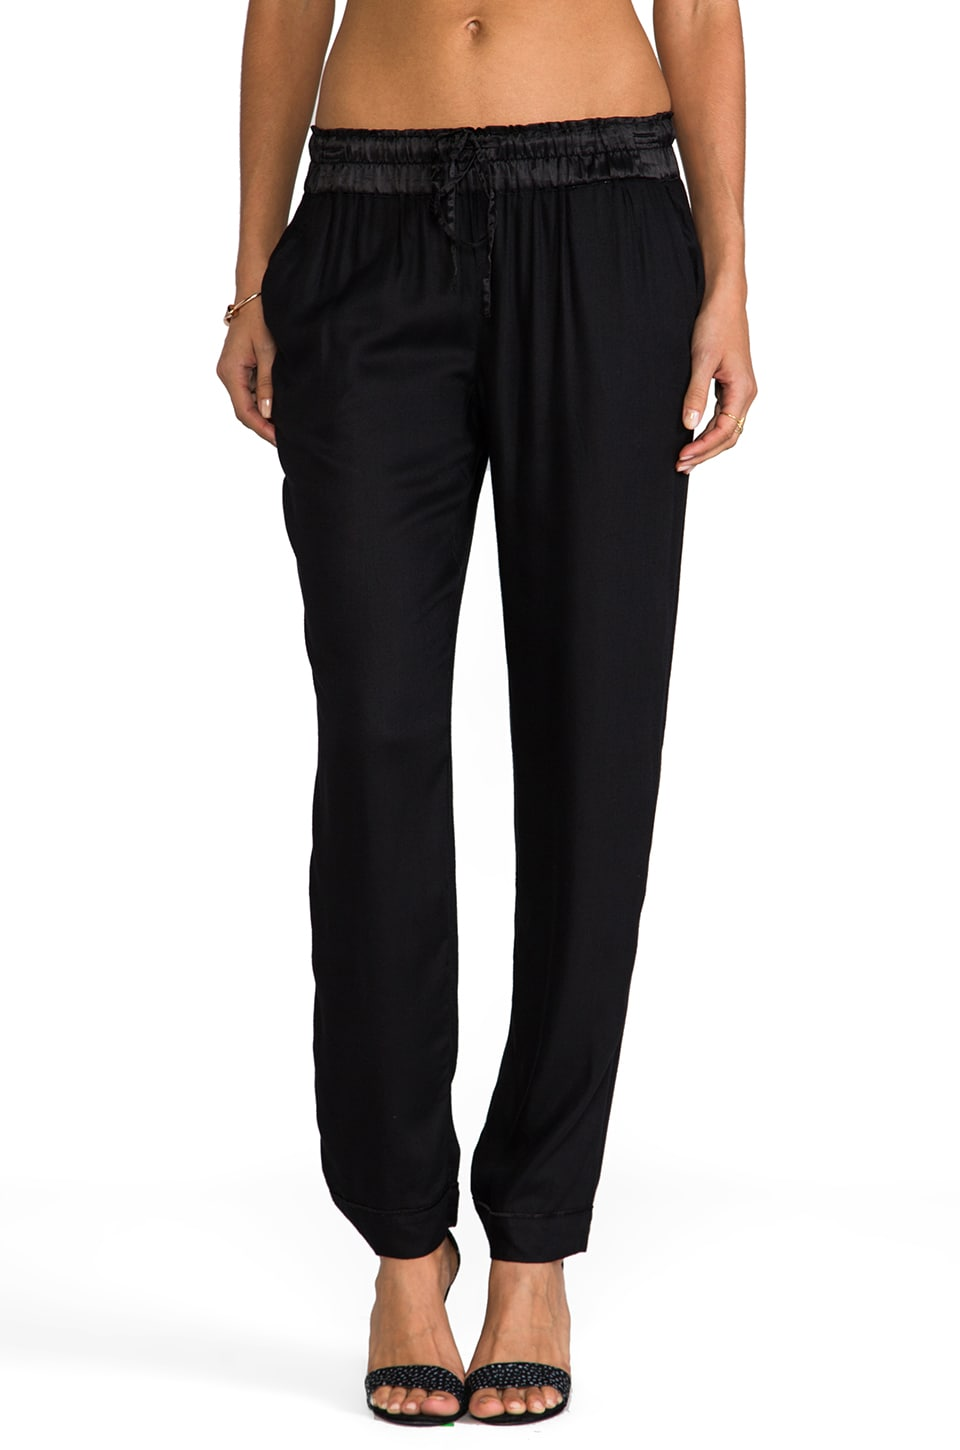 Soft Joie Cosmos Pant in Caviar